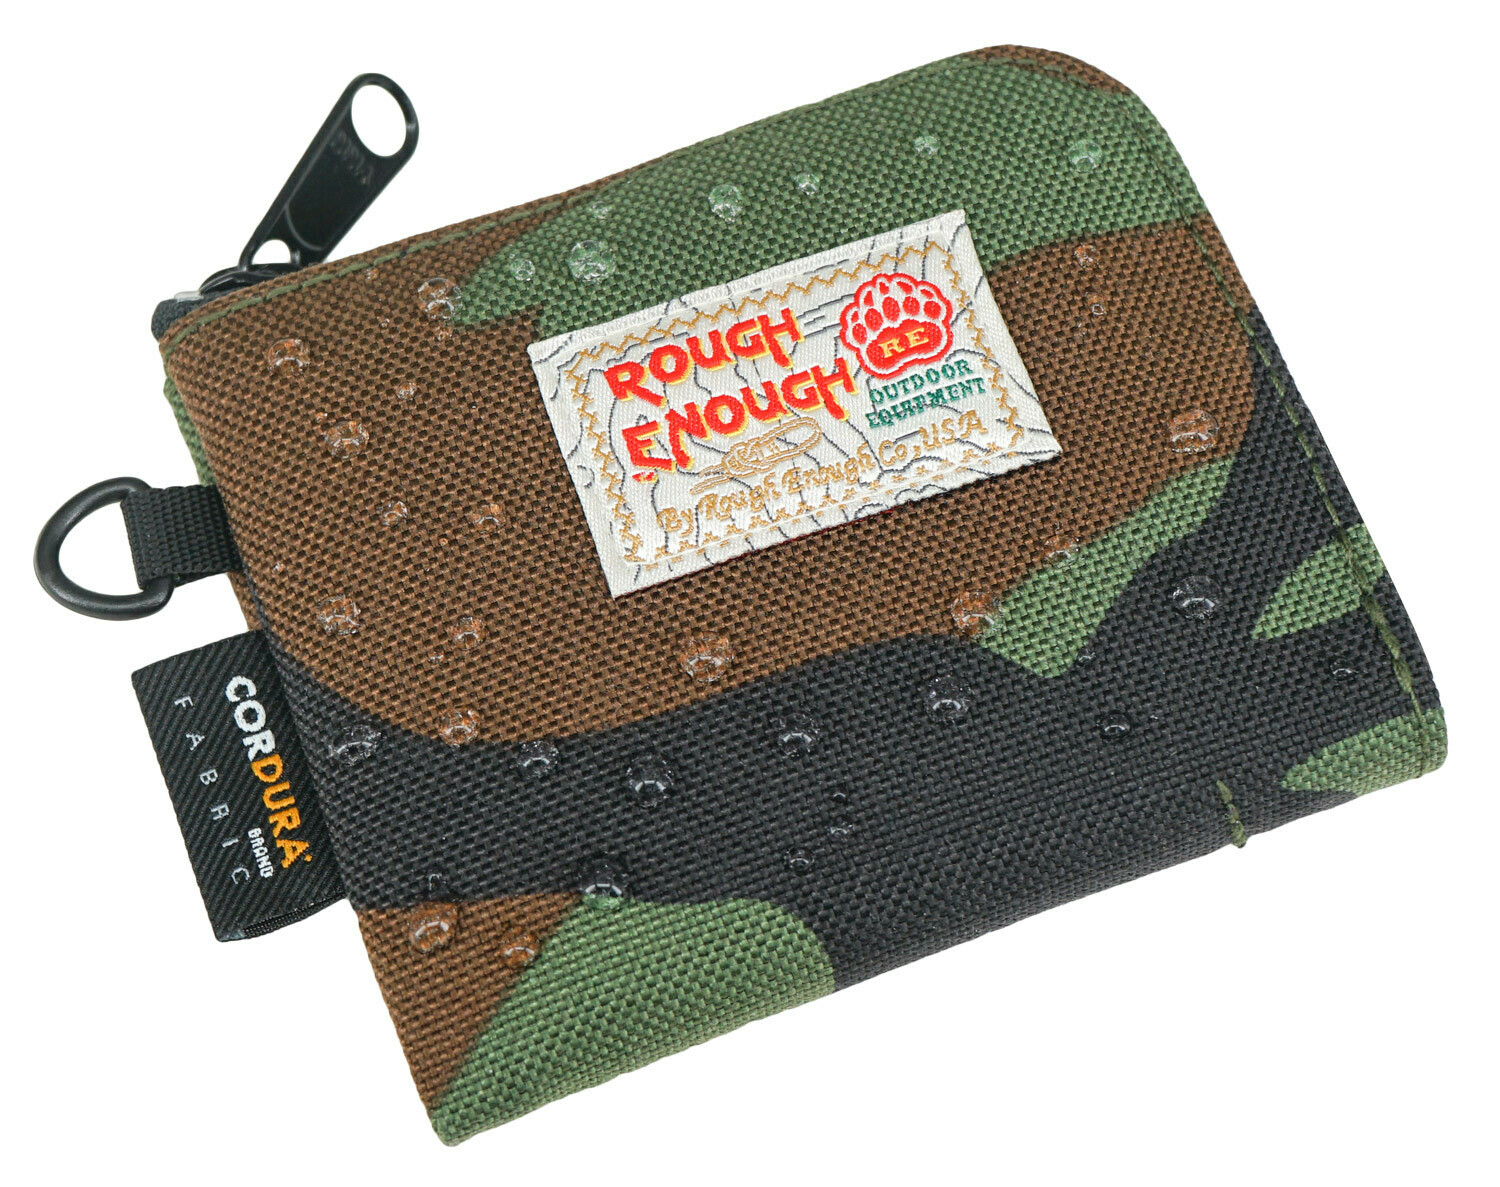 Rough Enough Small Coin Purse Pouch Change Purse